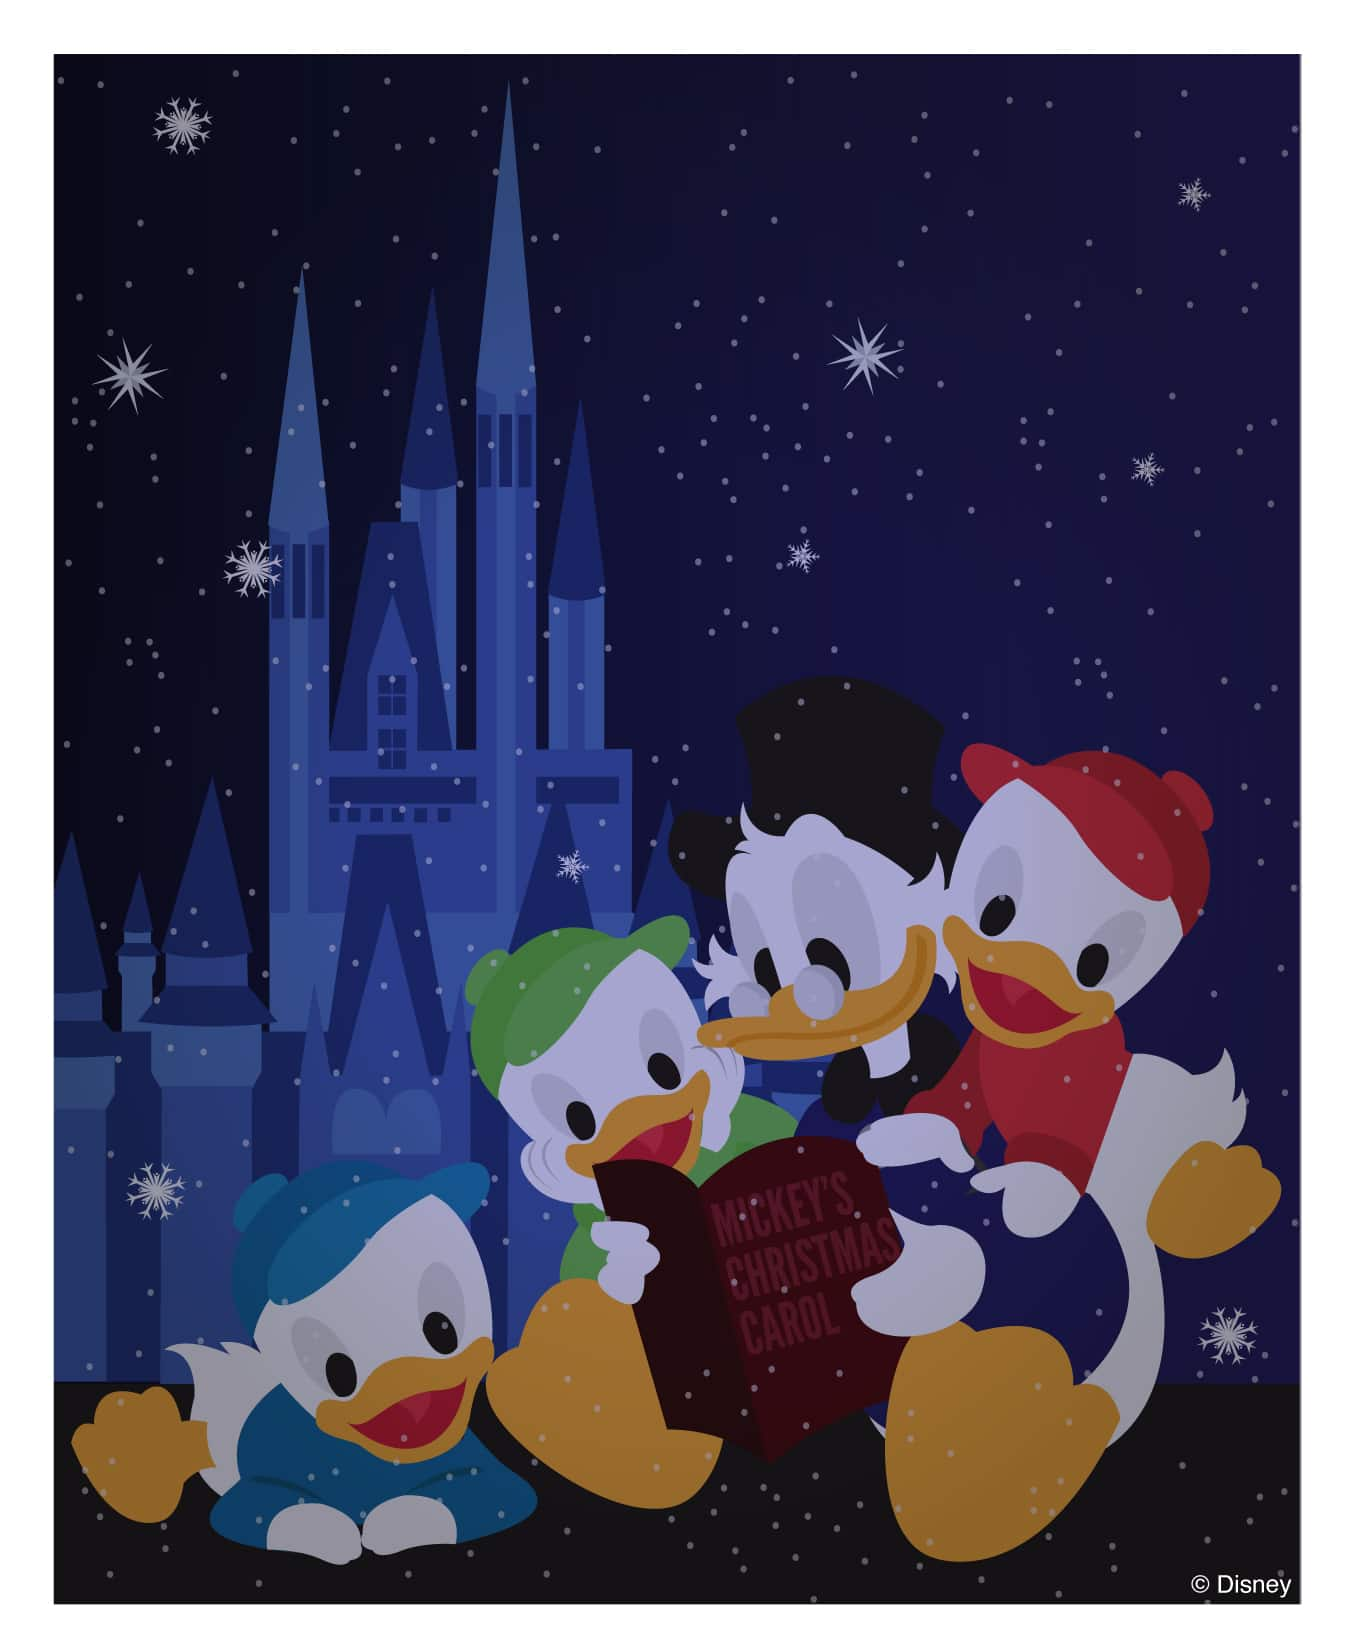 disney doodle enjoying mickeys christmas carol at magic kingdom park - Mickeys A Christmas Carol